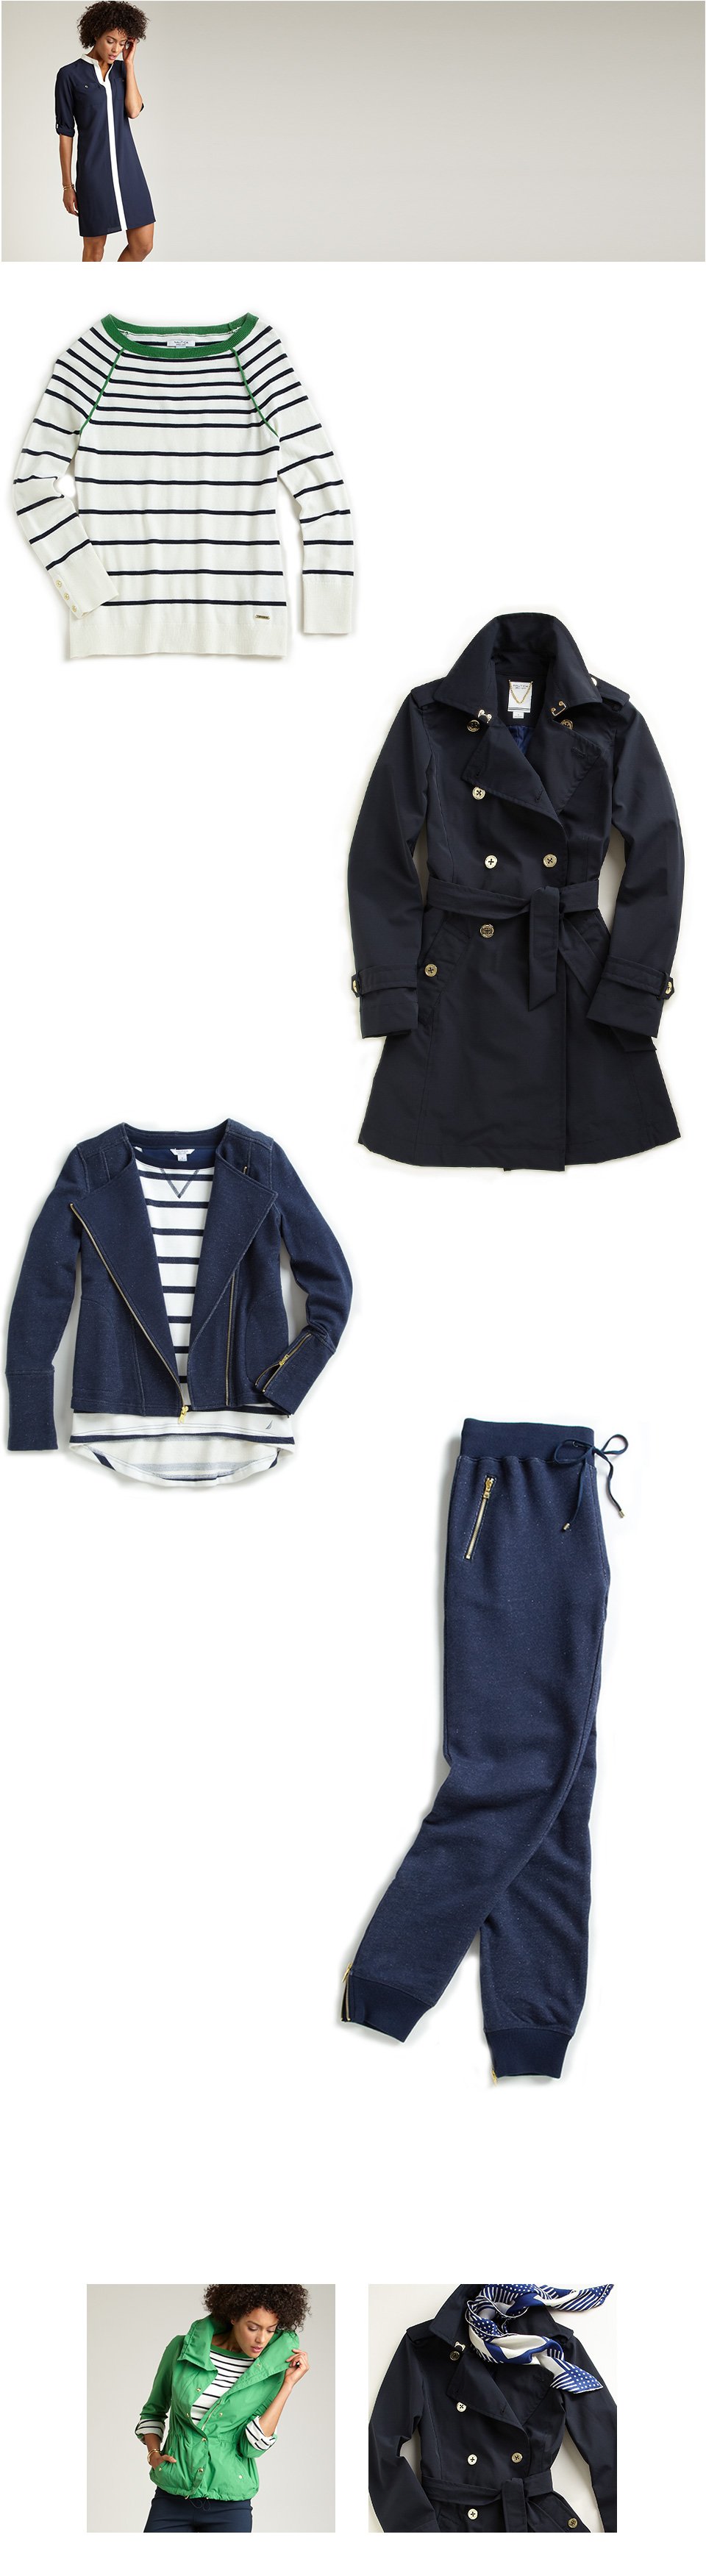 Women's Five Things: The Striped Raglan Sweater, The Double Breasted Trench Coat, The French Terry Moto Jacket, THe French Terry Lounge Pant.